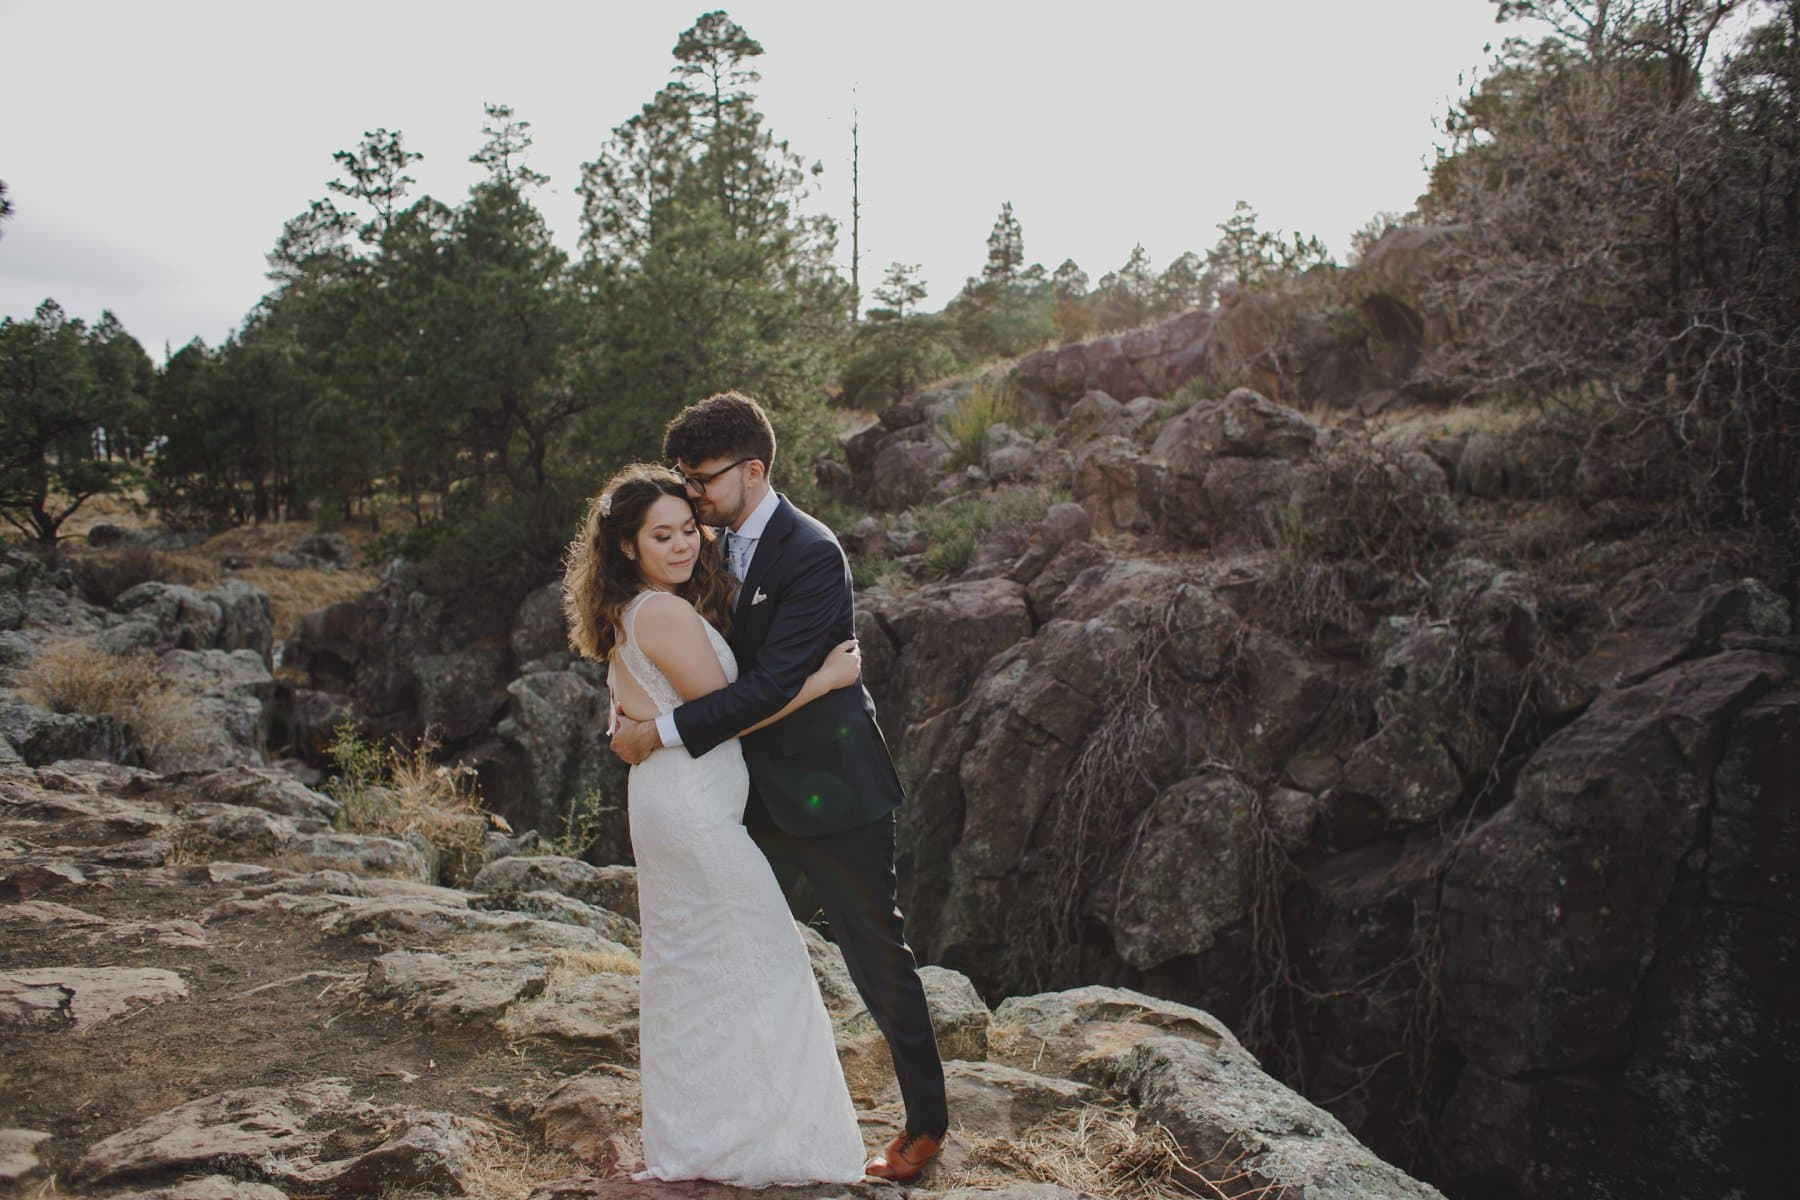 Flagstaff adventurous elopement